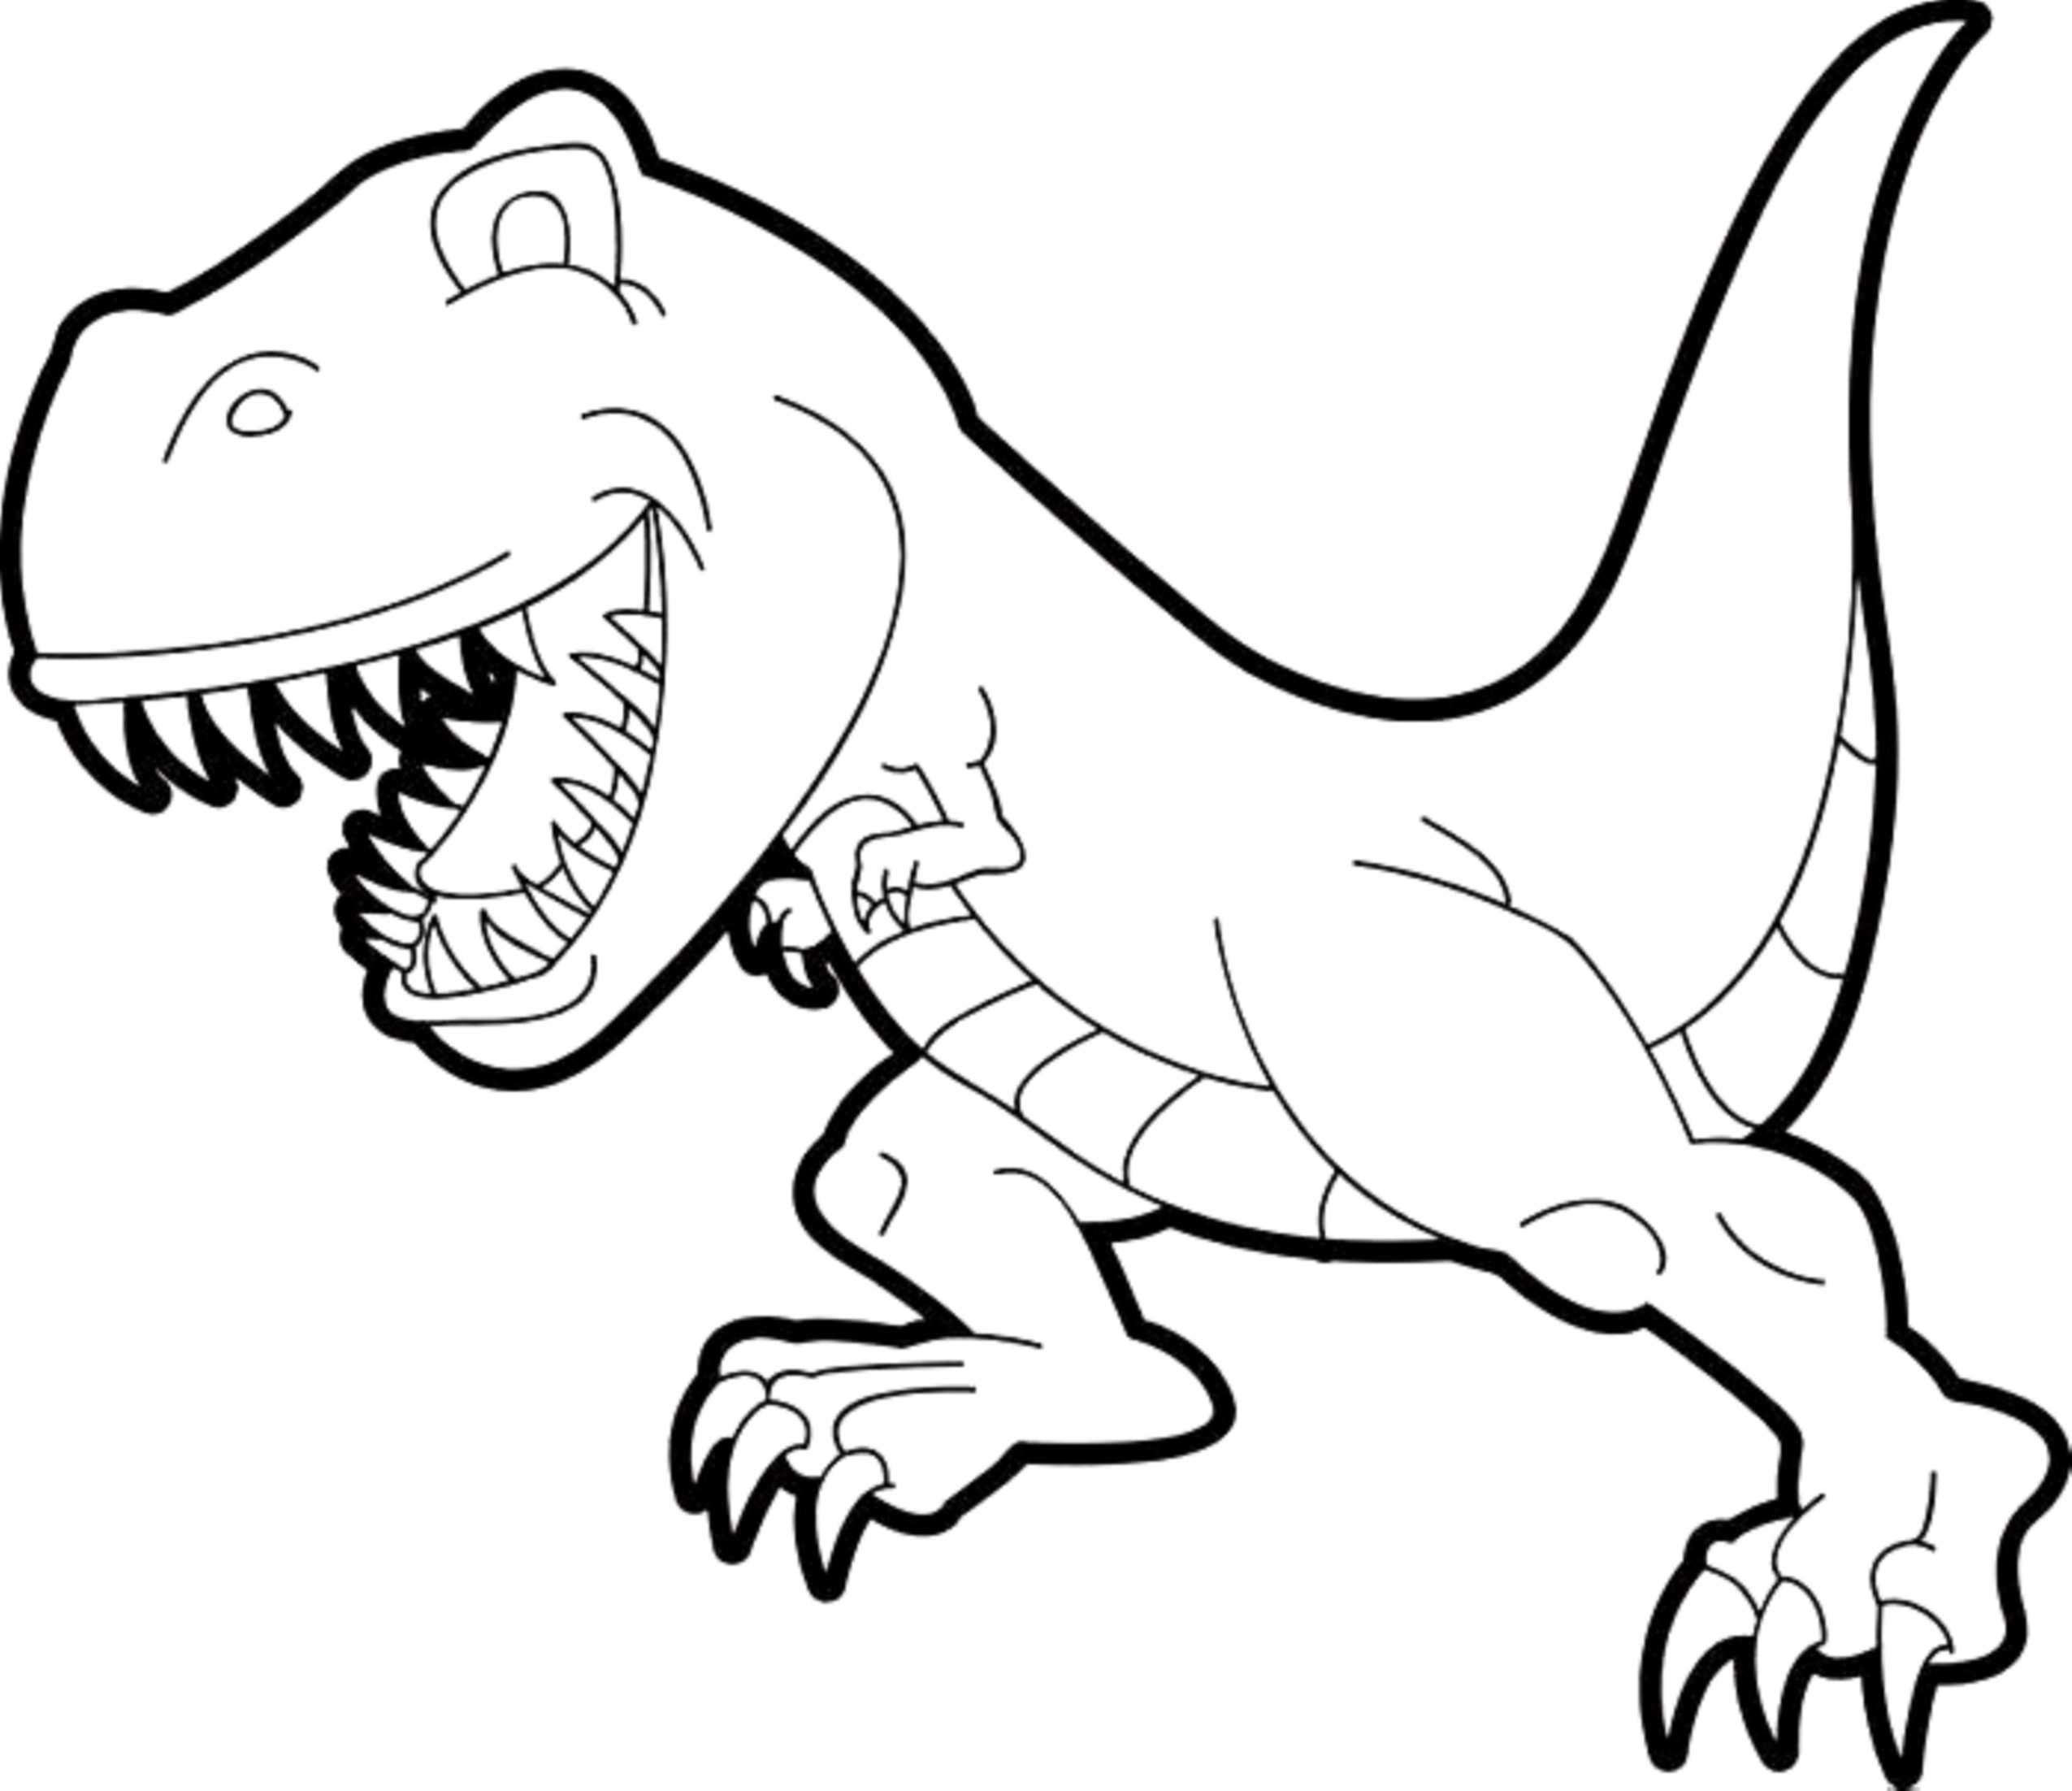 dinosaur coloring easy simple dinosaur coloring pages coloring pages to dinosaur easy coloring